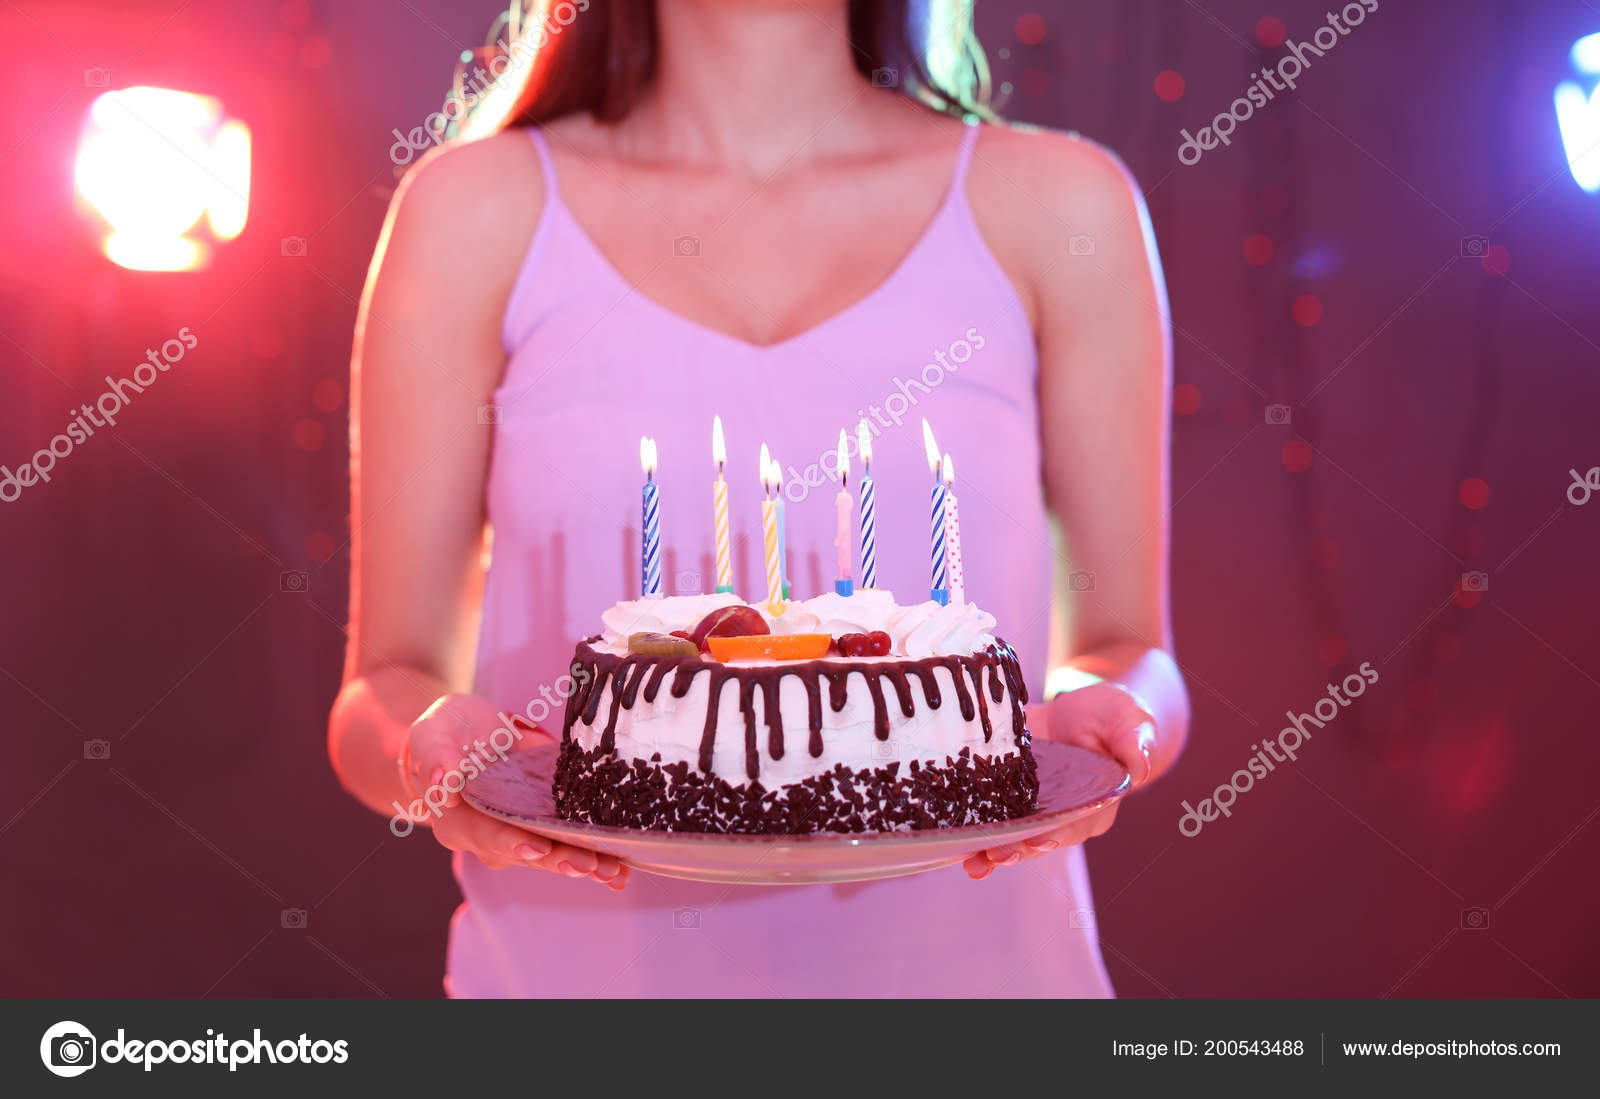 Young Woman Birthday Cake Nightclub Closeup Stock Photo